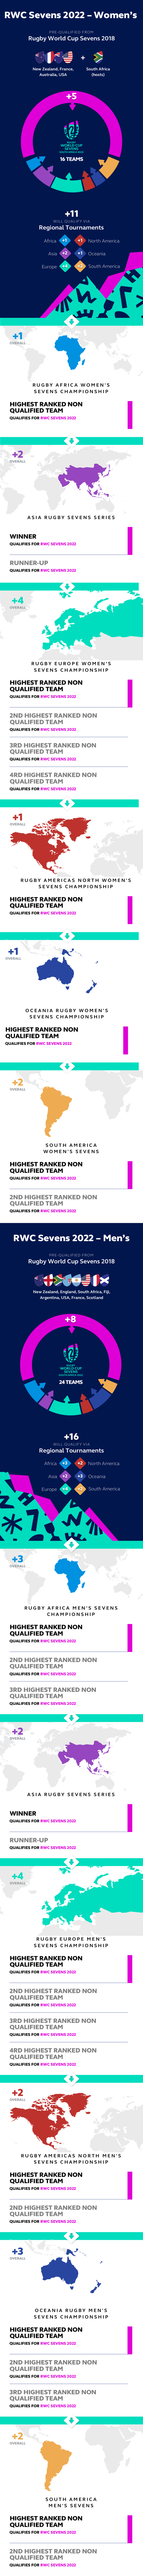 http://www.worldrugby.org/photos/637611